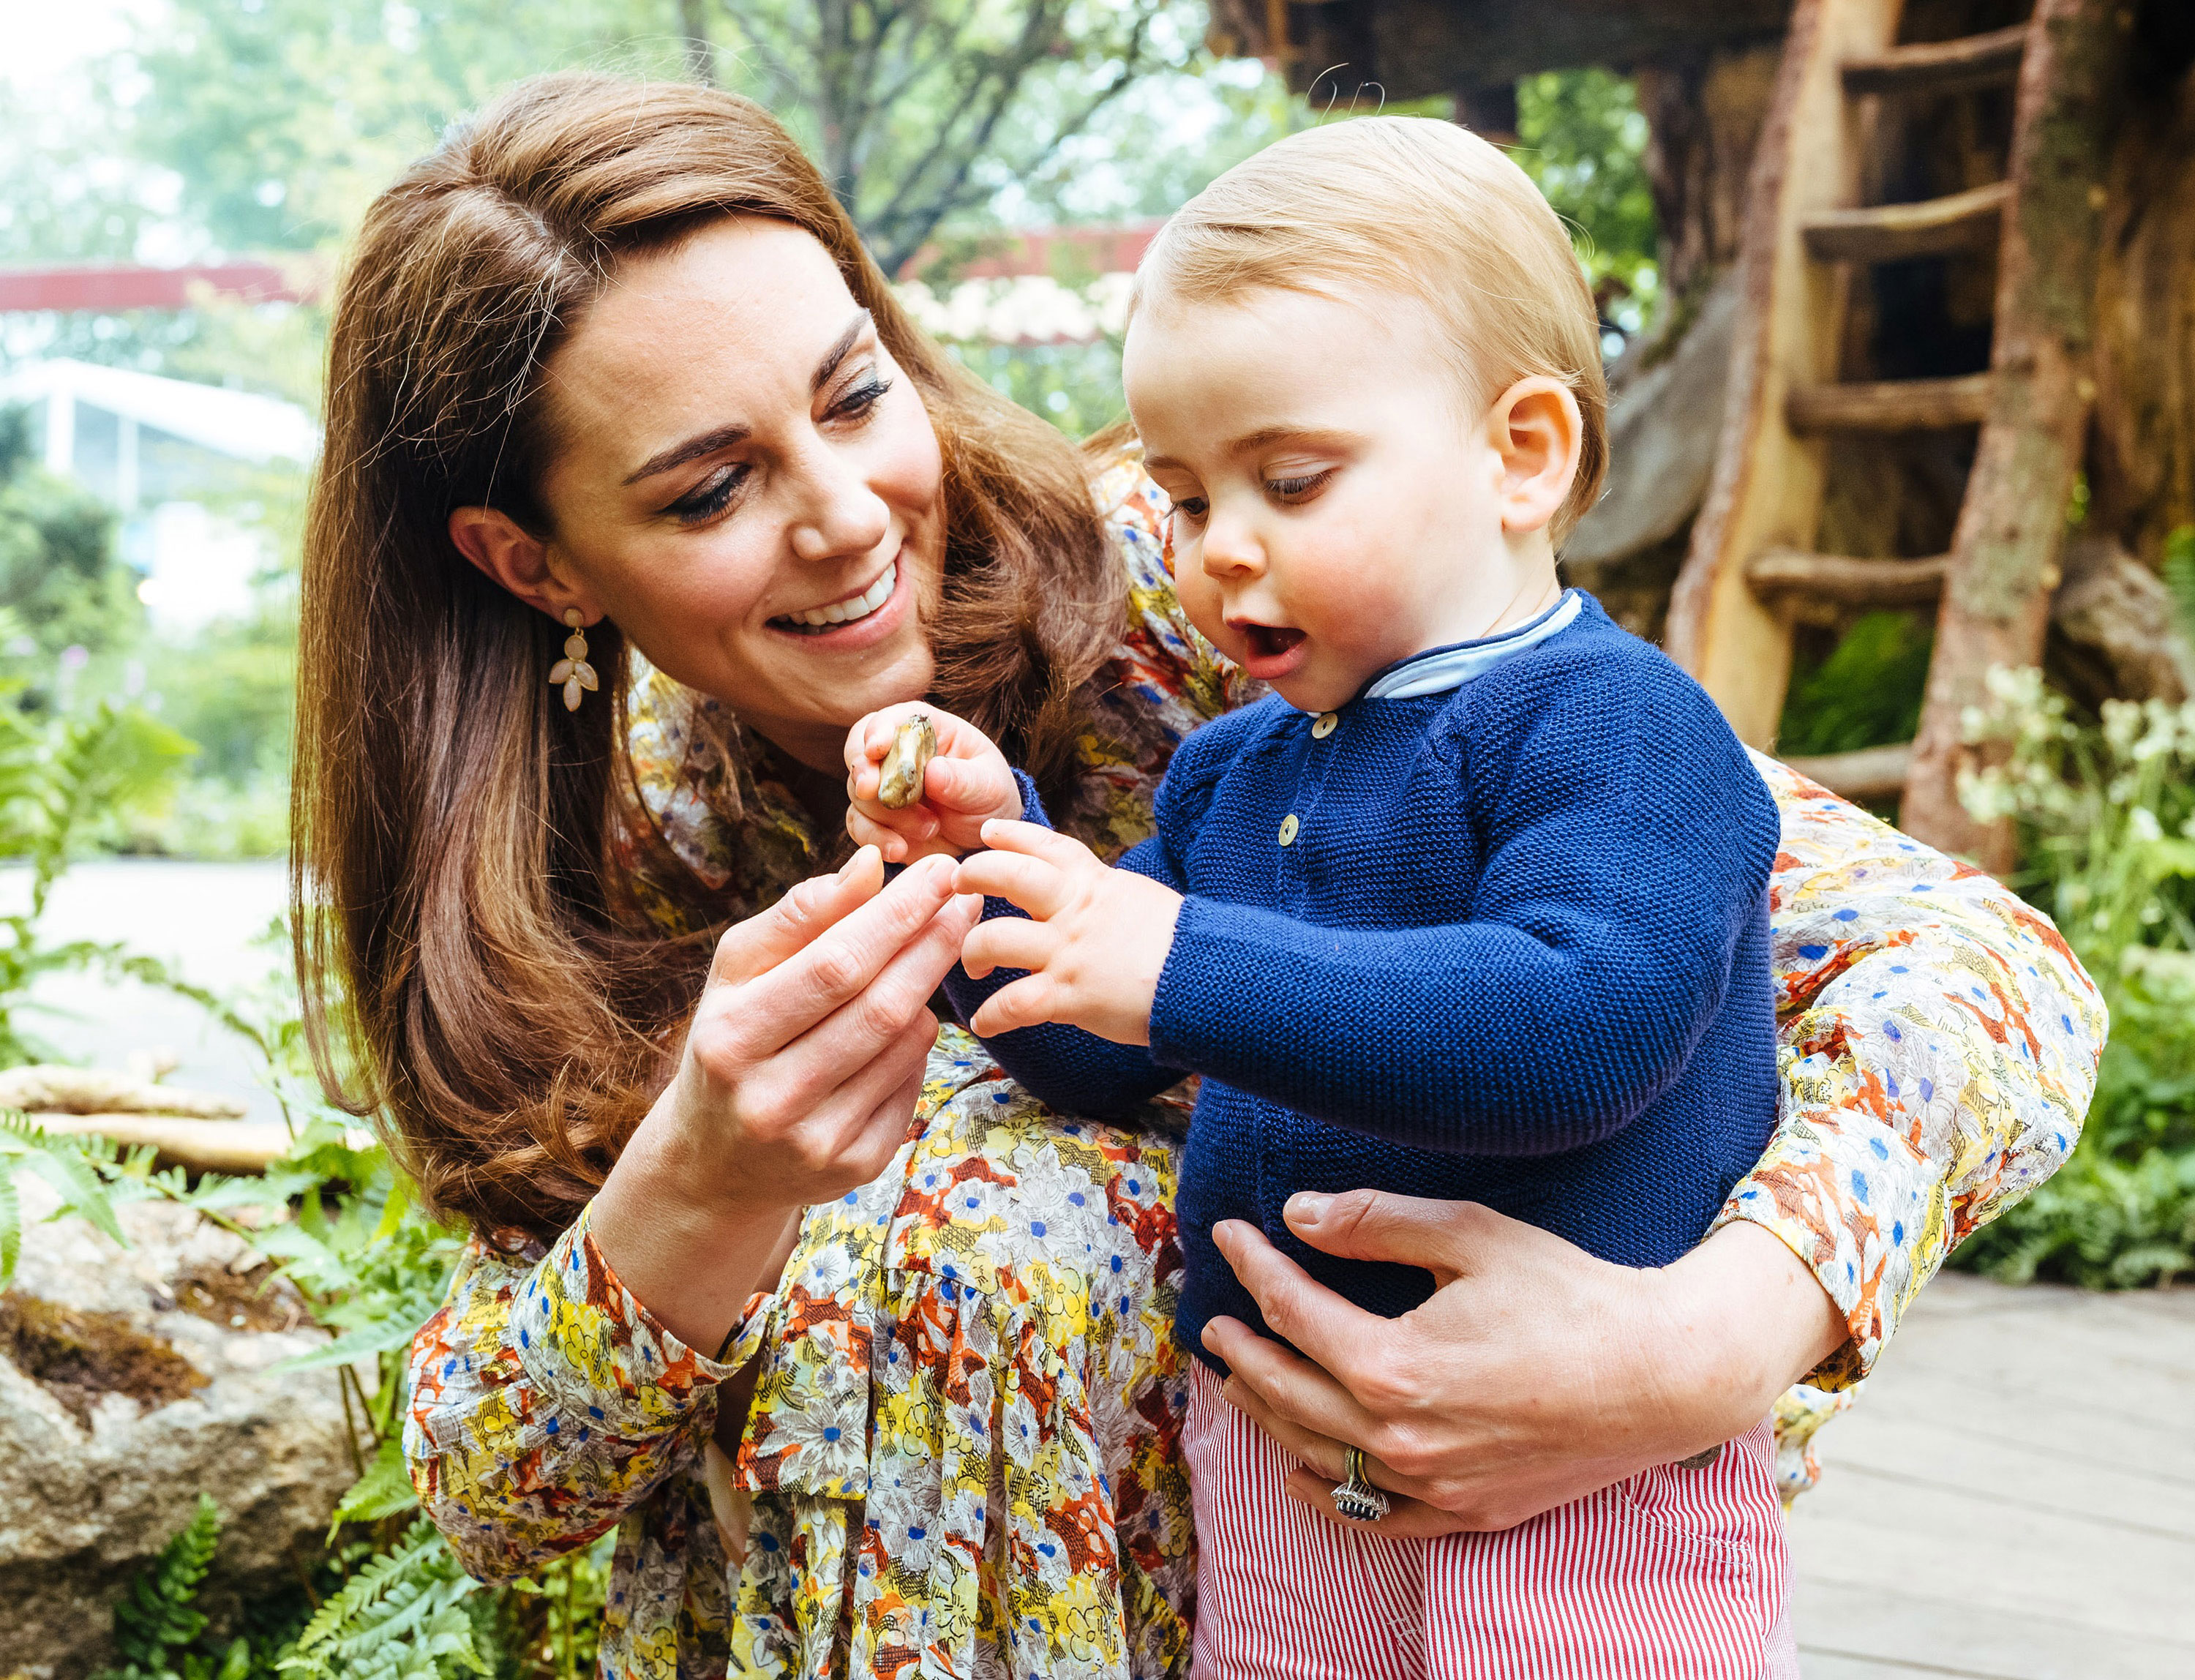 Prince William, Duchess Kate and Kids Play in the Garden She Designed at Chelsea Flower Show - Kate paid tribute to William's late mother, Princess Diana, by including her favorite flowers, forget-me-nots, in the garden's design.